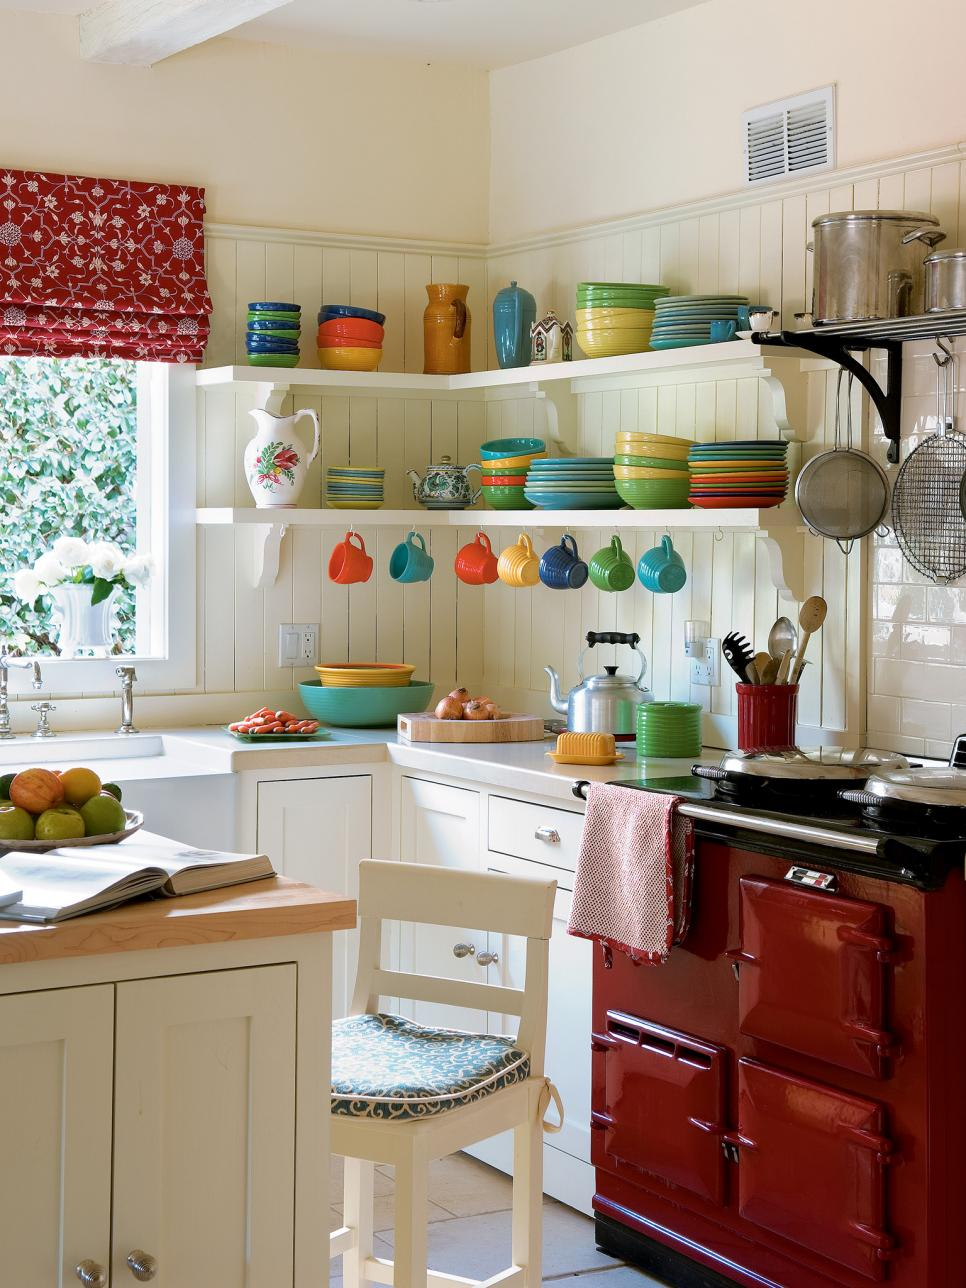 Pictures of Pictures of Small Kitchen Design Ideas From HGTV | HGTV small kitchen designs ideas